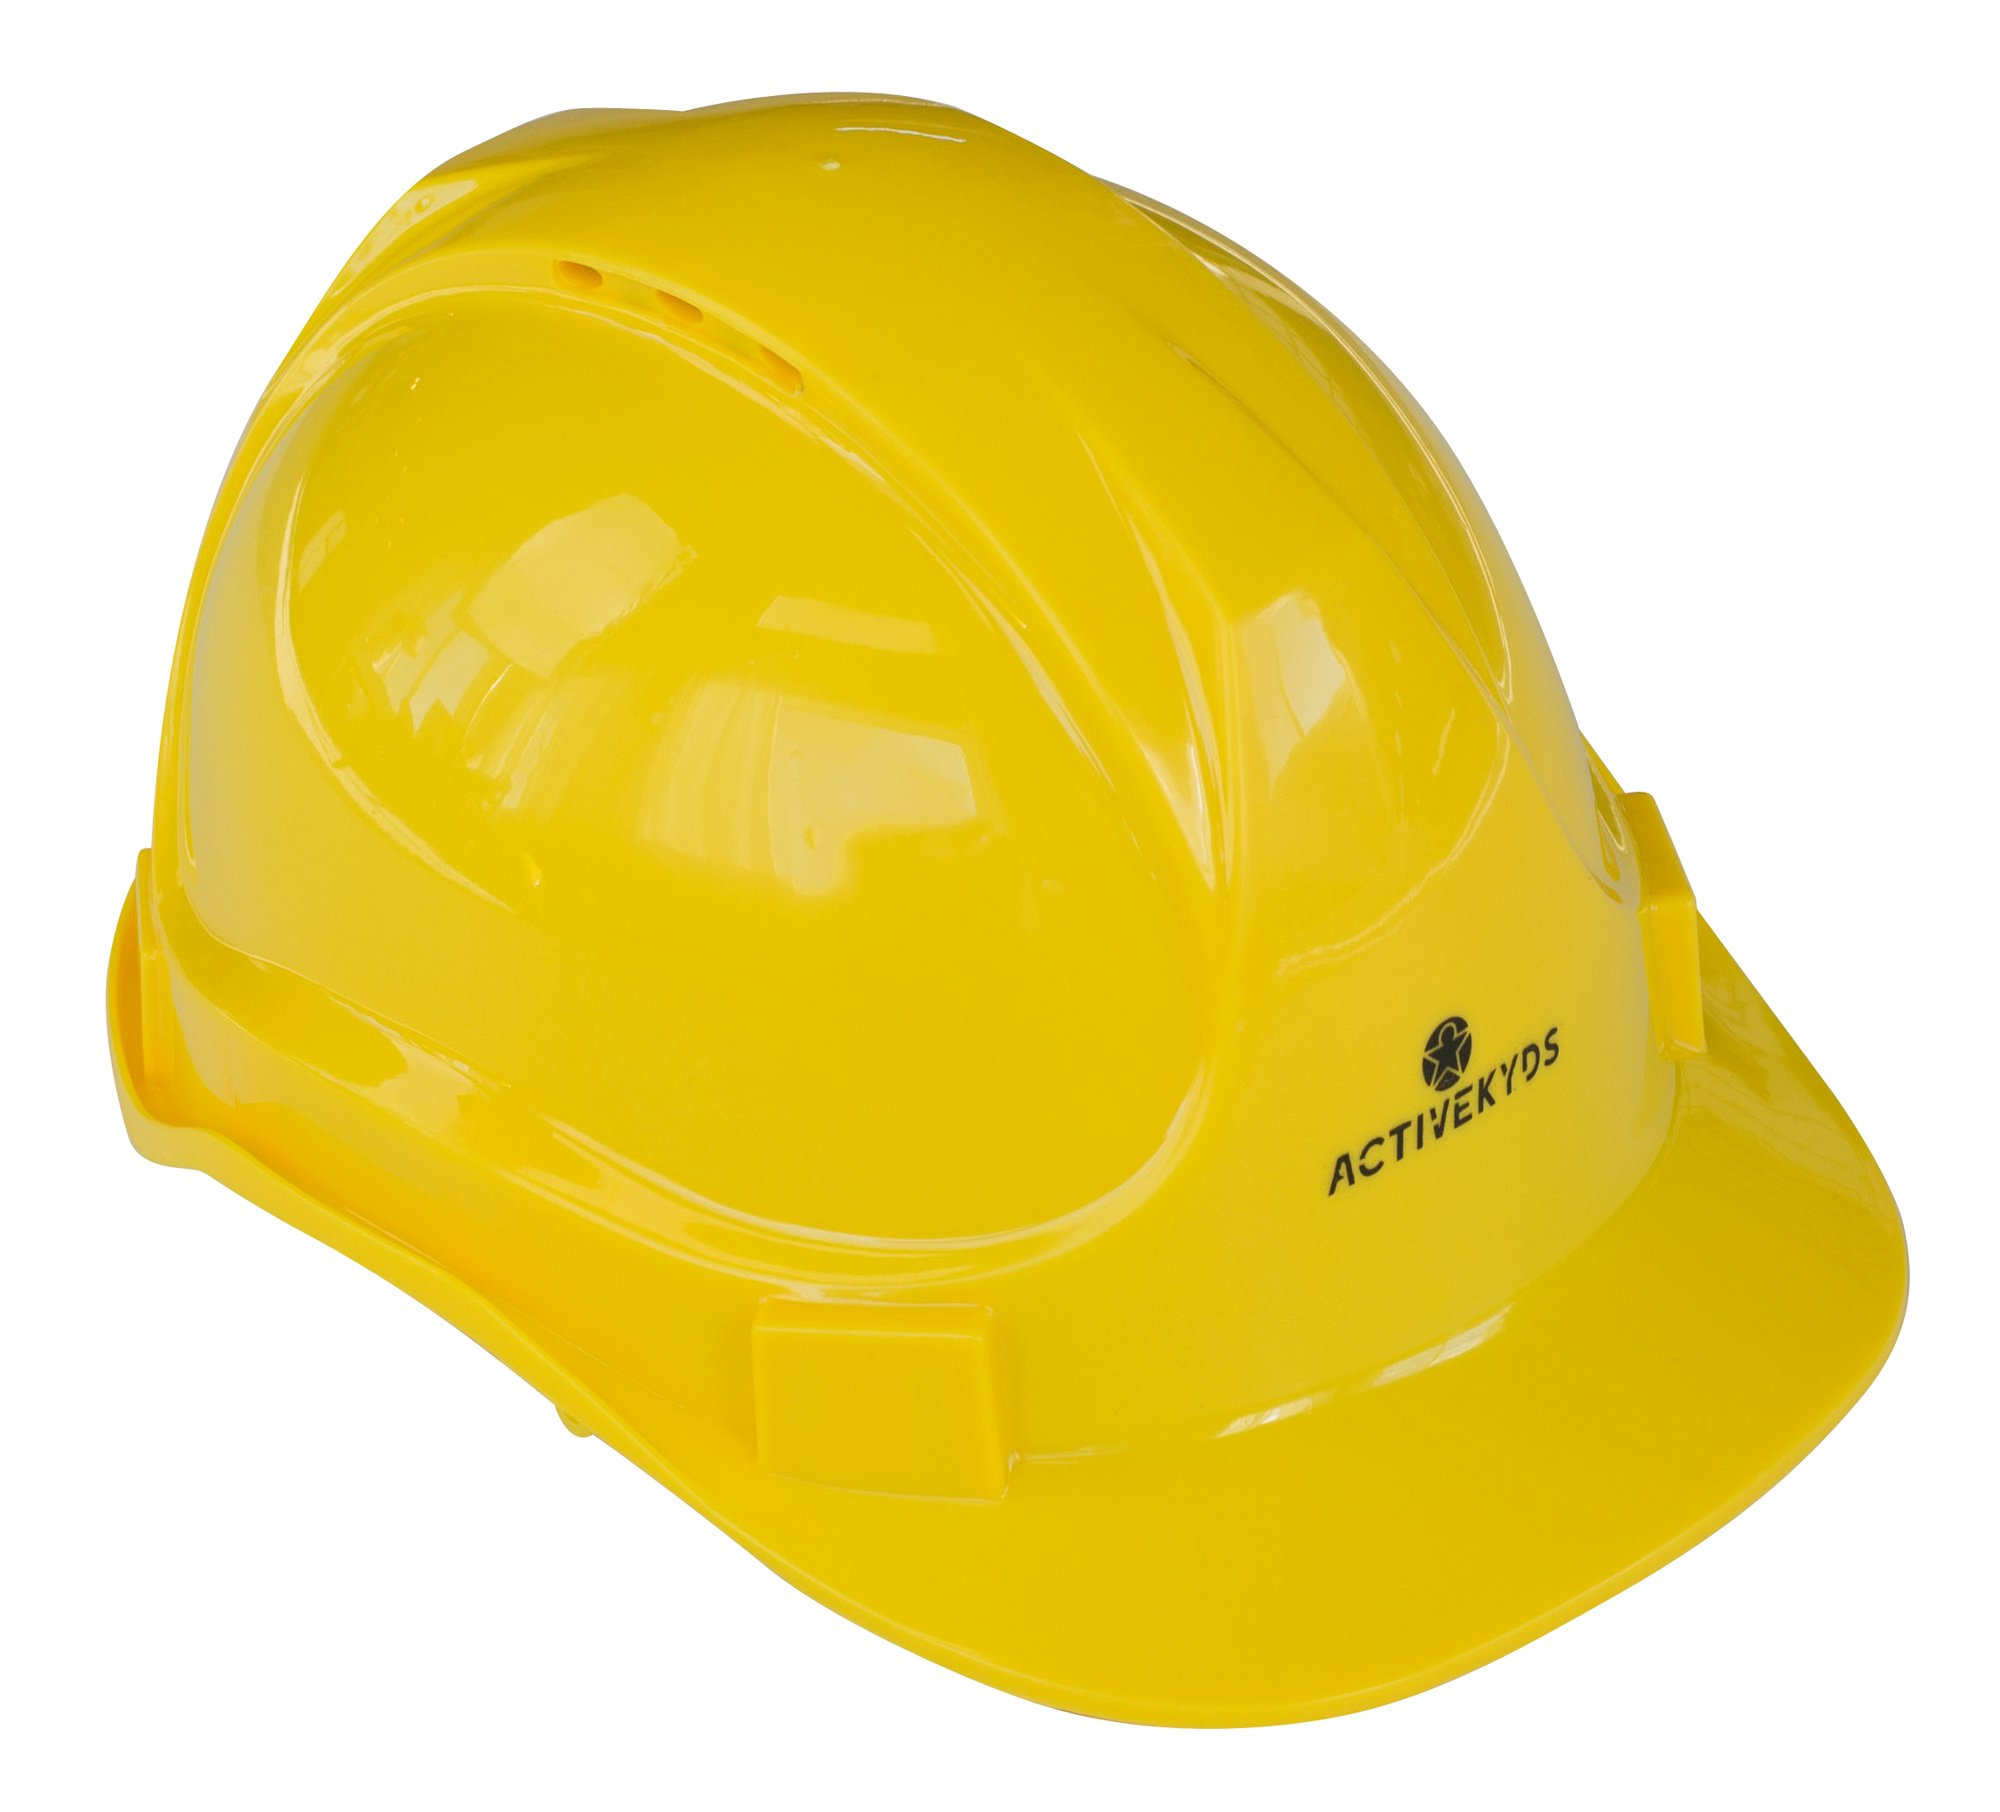 Active Kyds Adjustable Yellow Hard Hat for Kids Construction Costume (Small) by Active Kyds